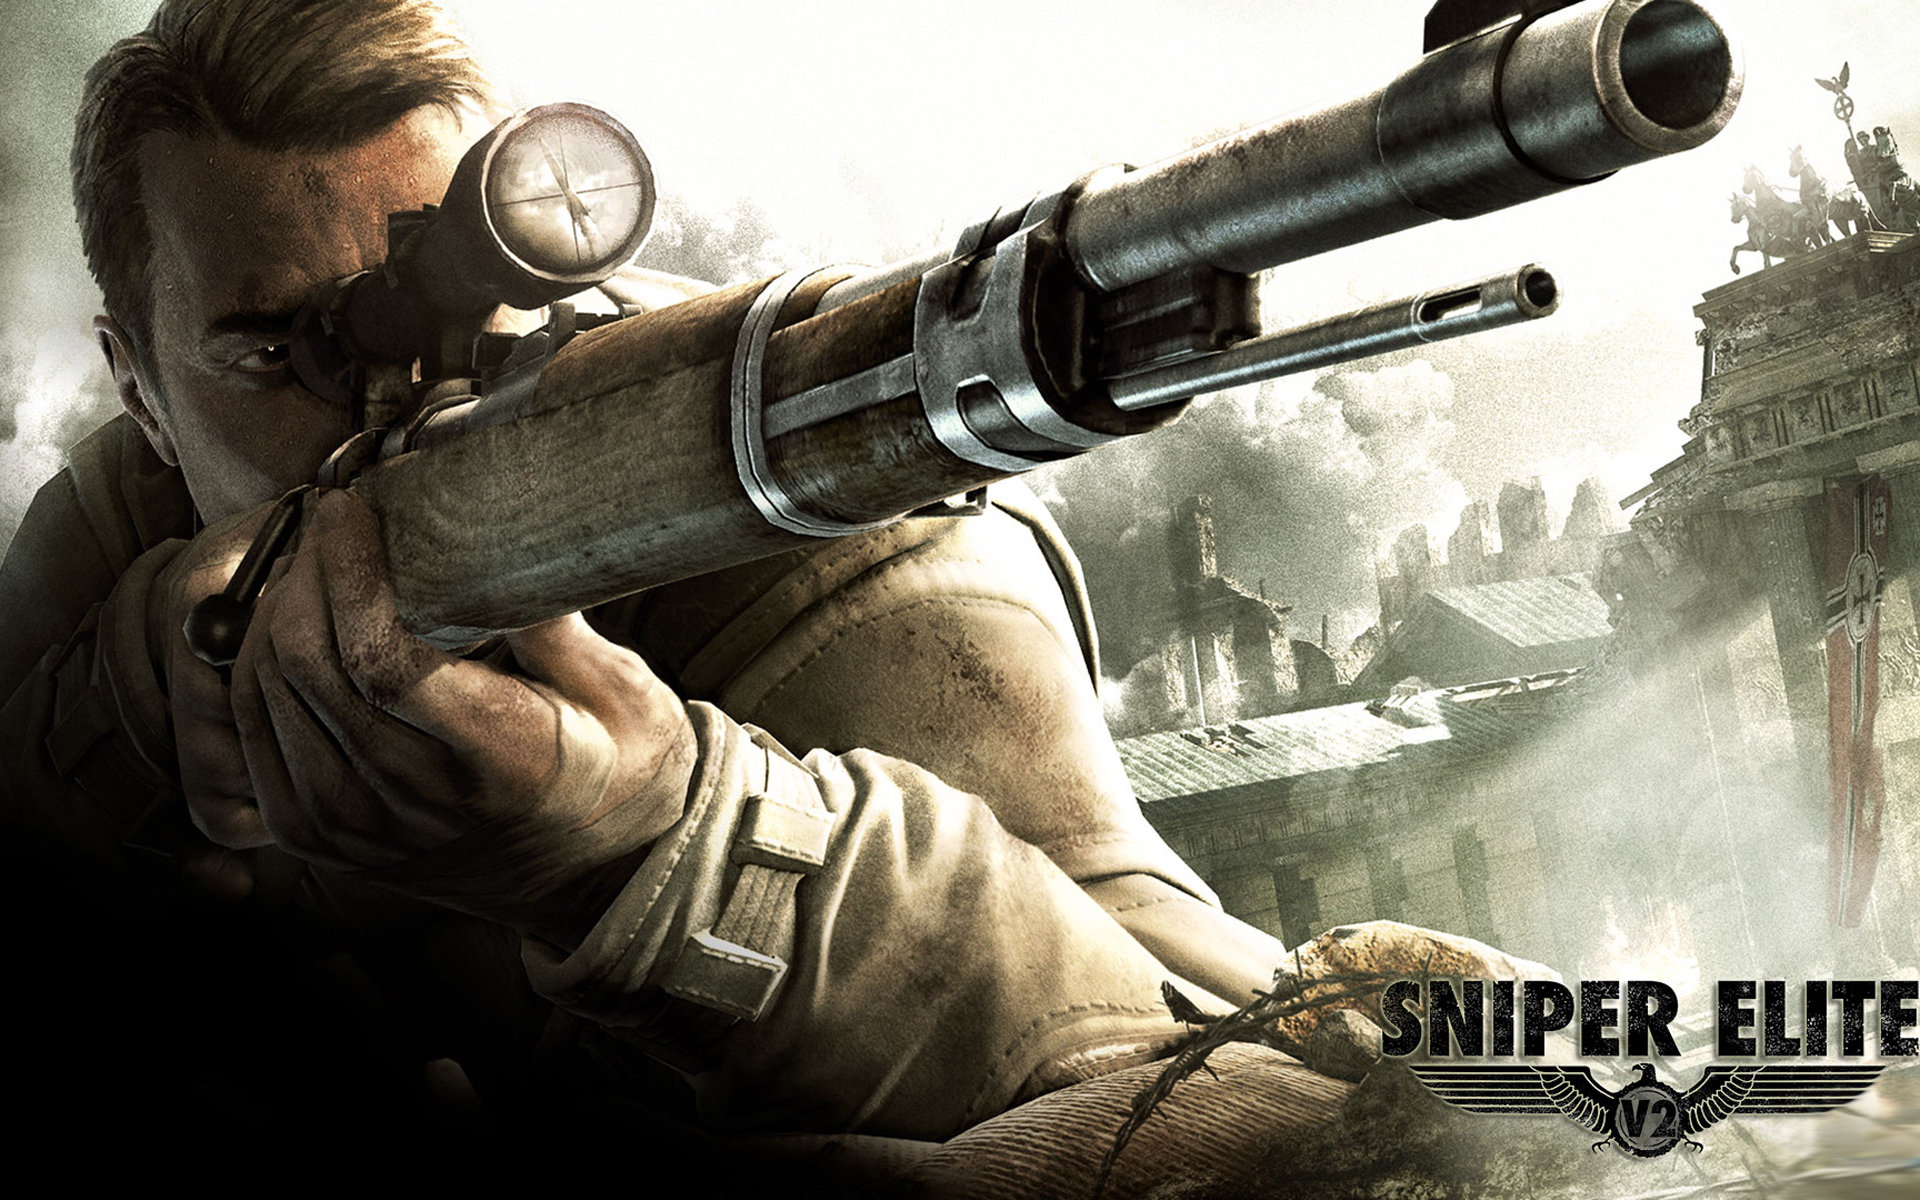 Sniper Elite V2 Wallpaper HD 1920x1200